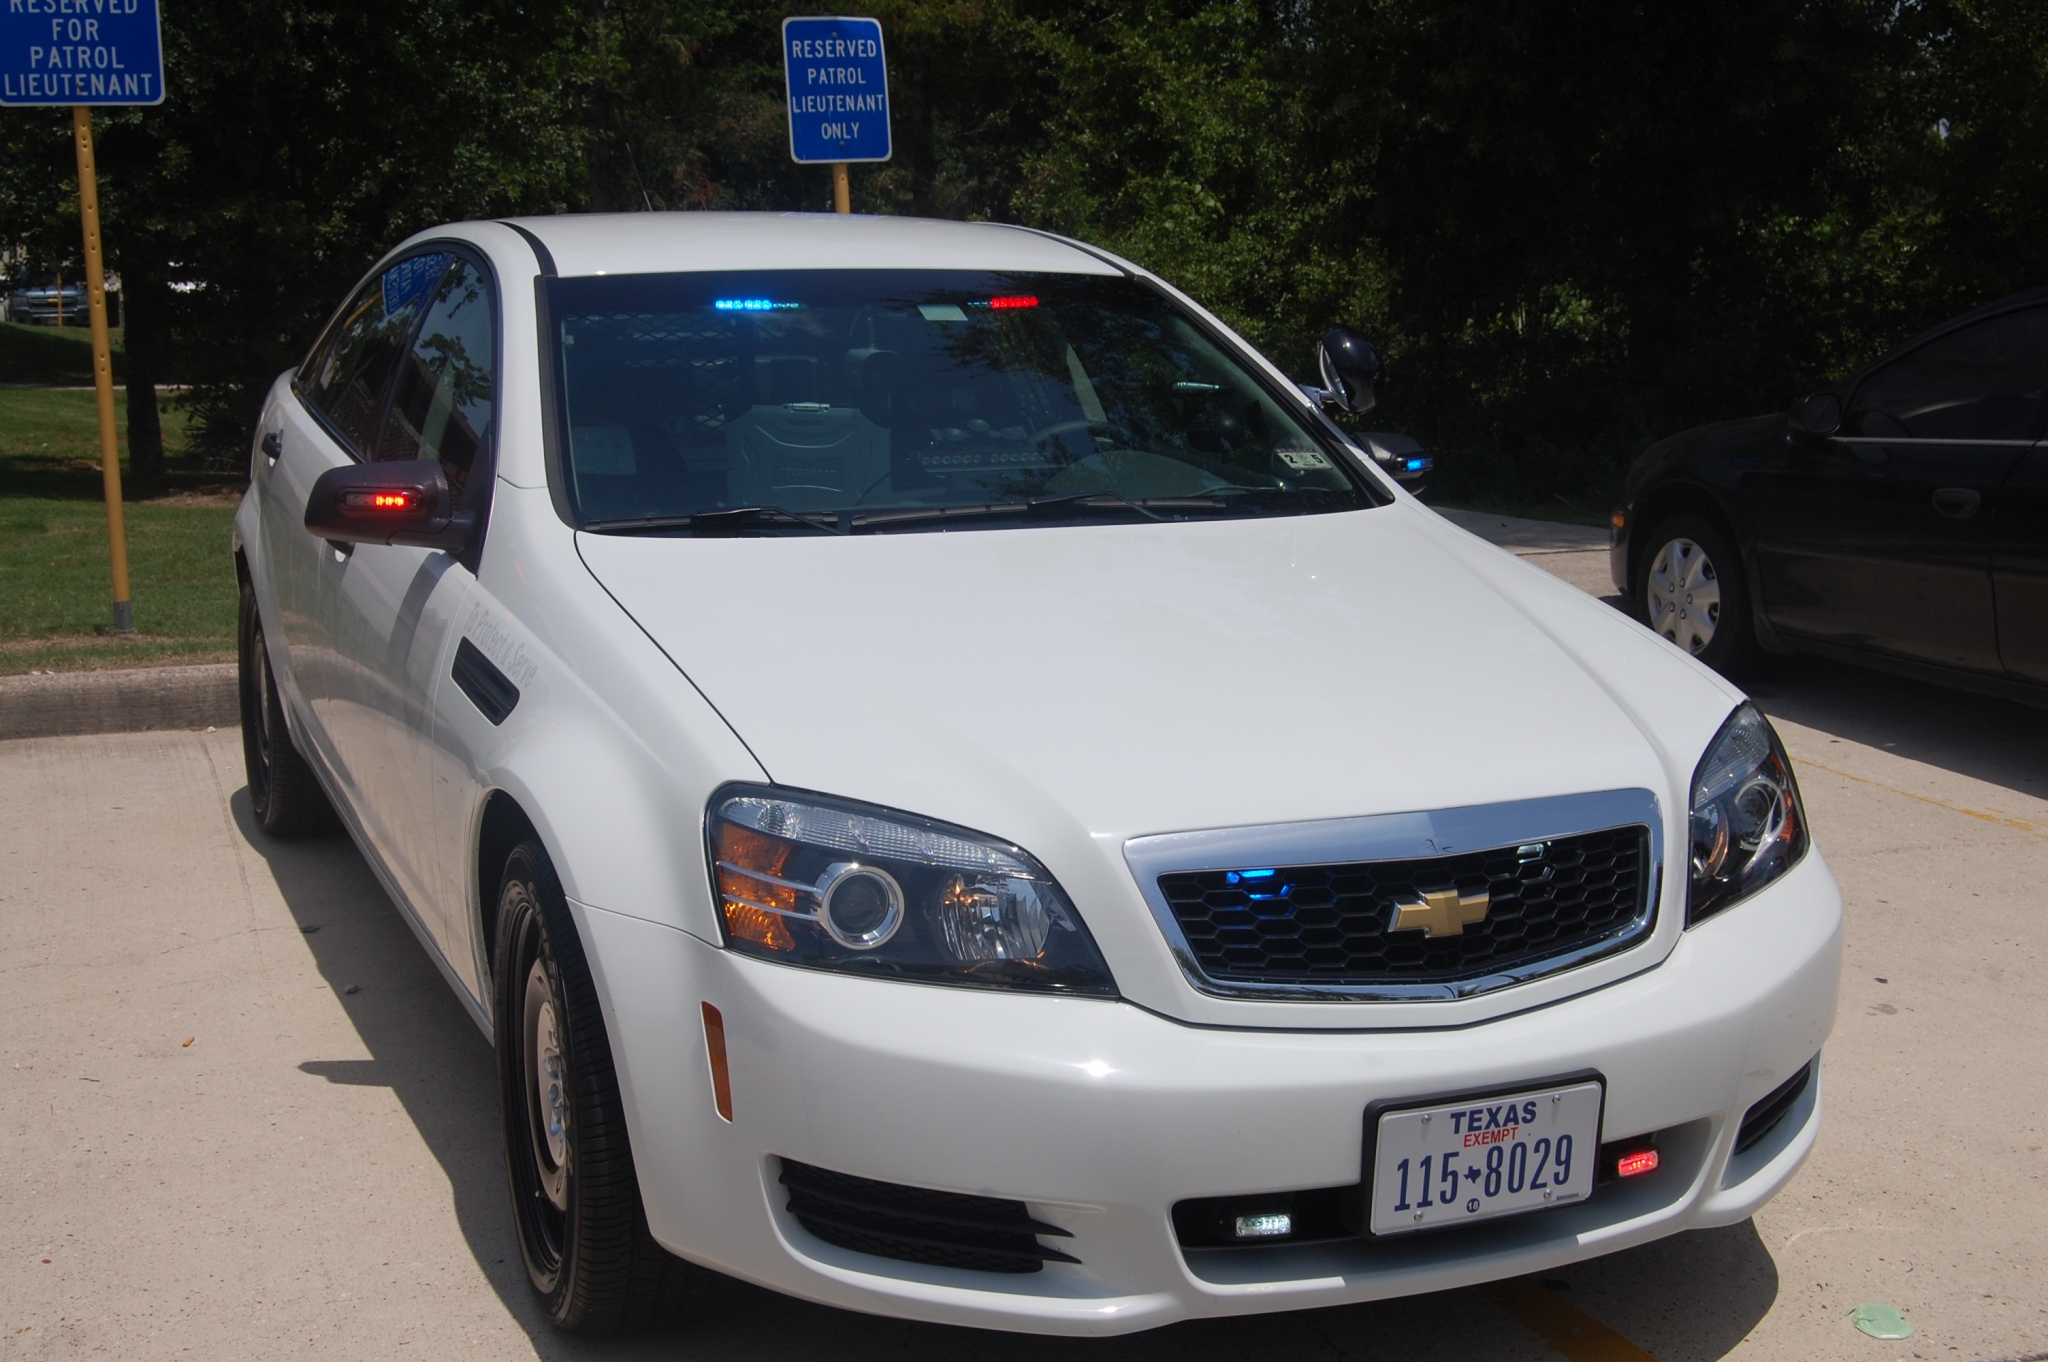 First ghost patrol cars released on Harris County tollway